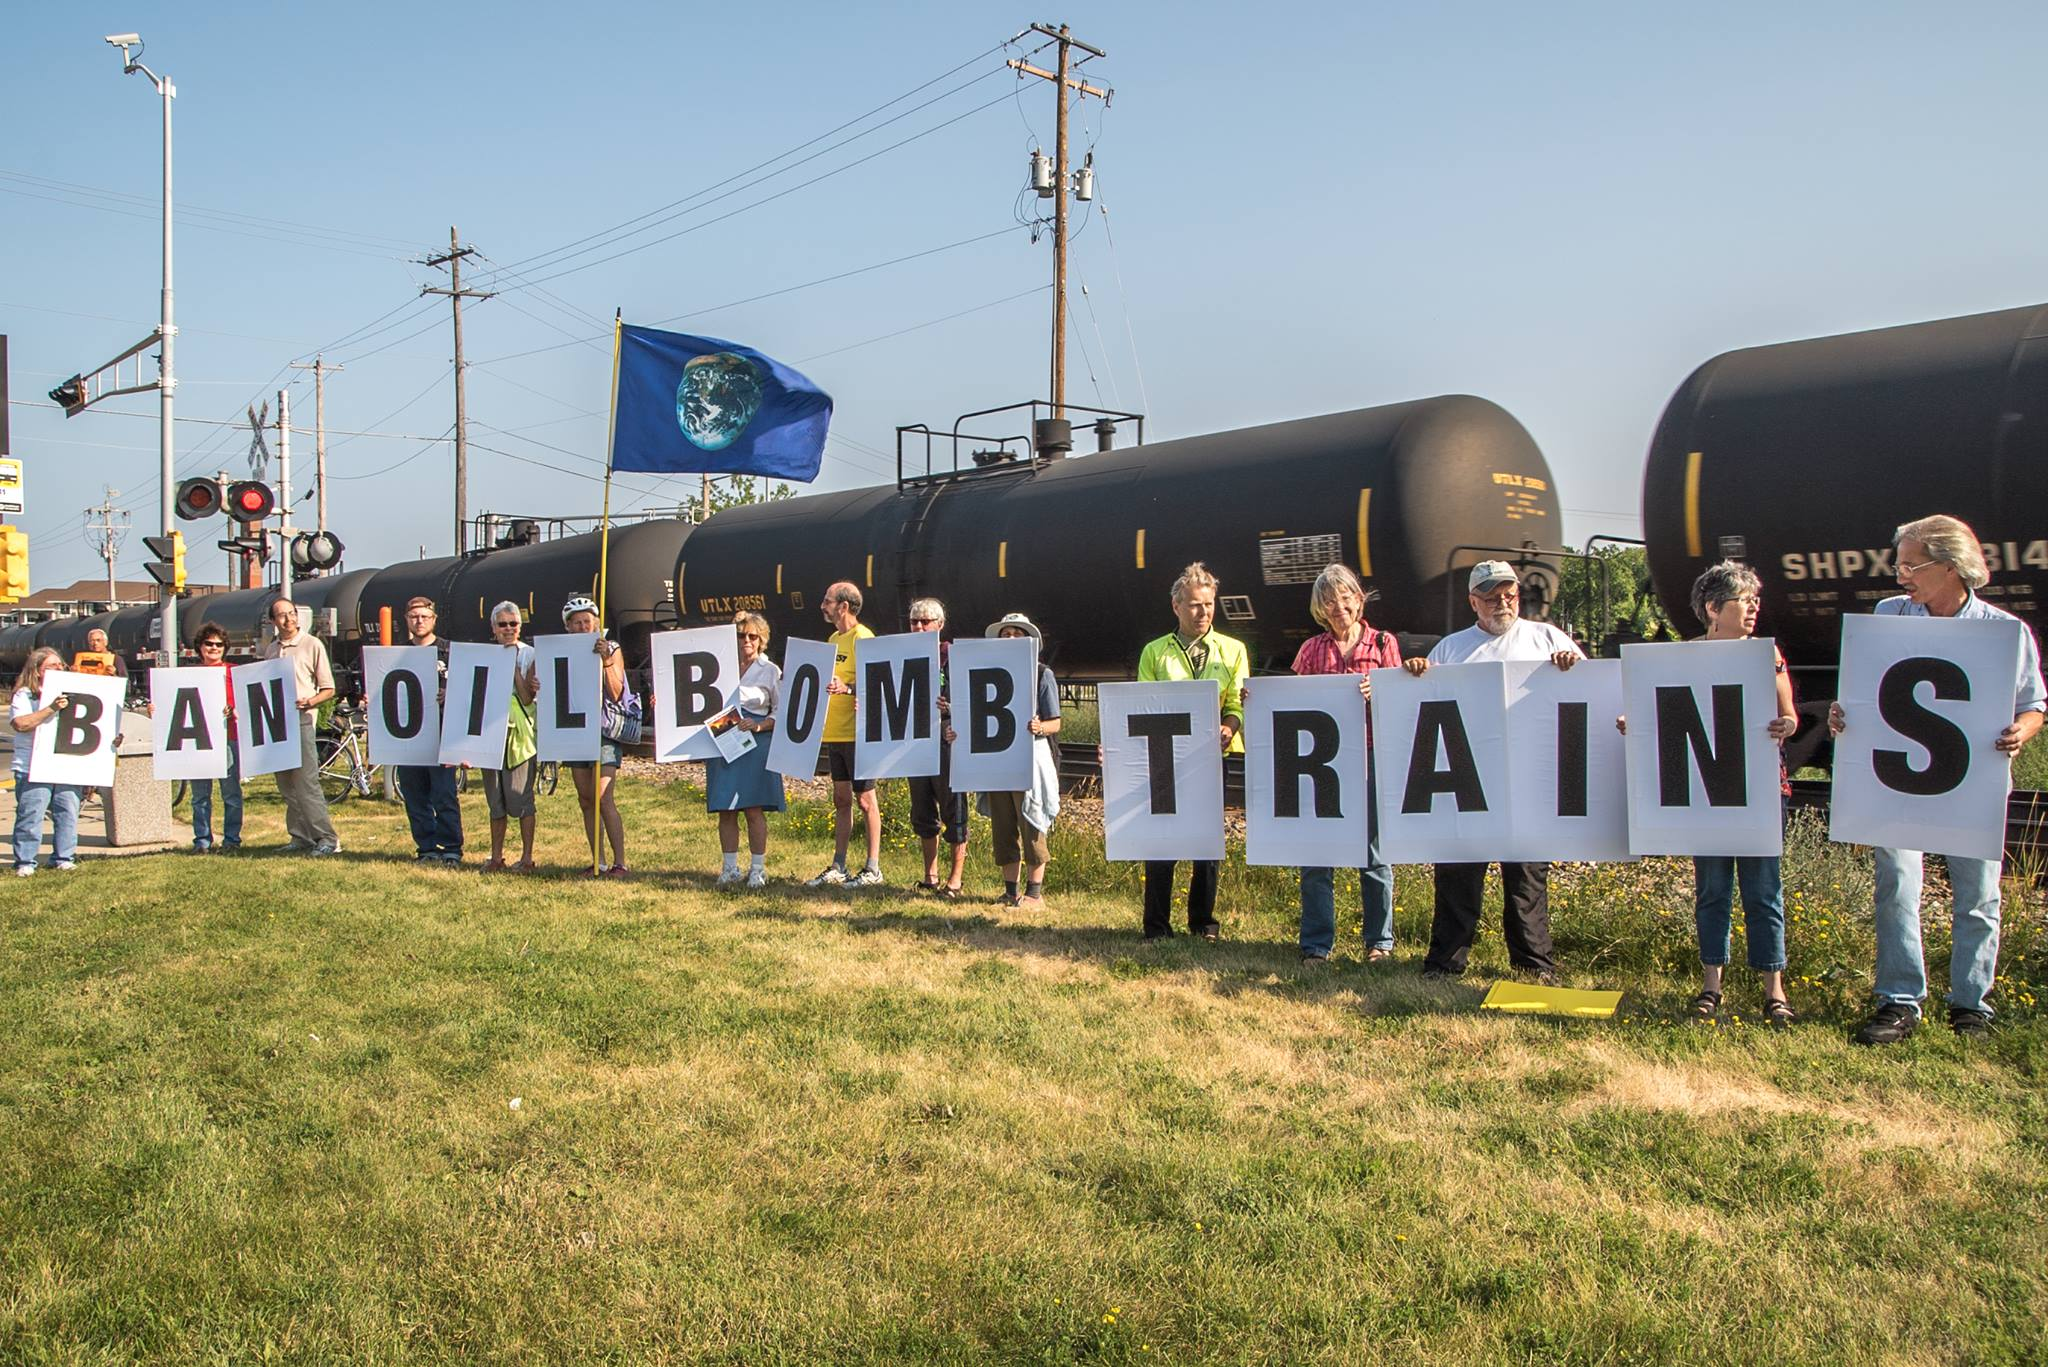 Members of this Daylight Brigade in Wauwatosa bring visibility to the issue of bomb trains.